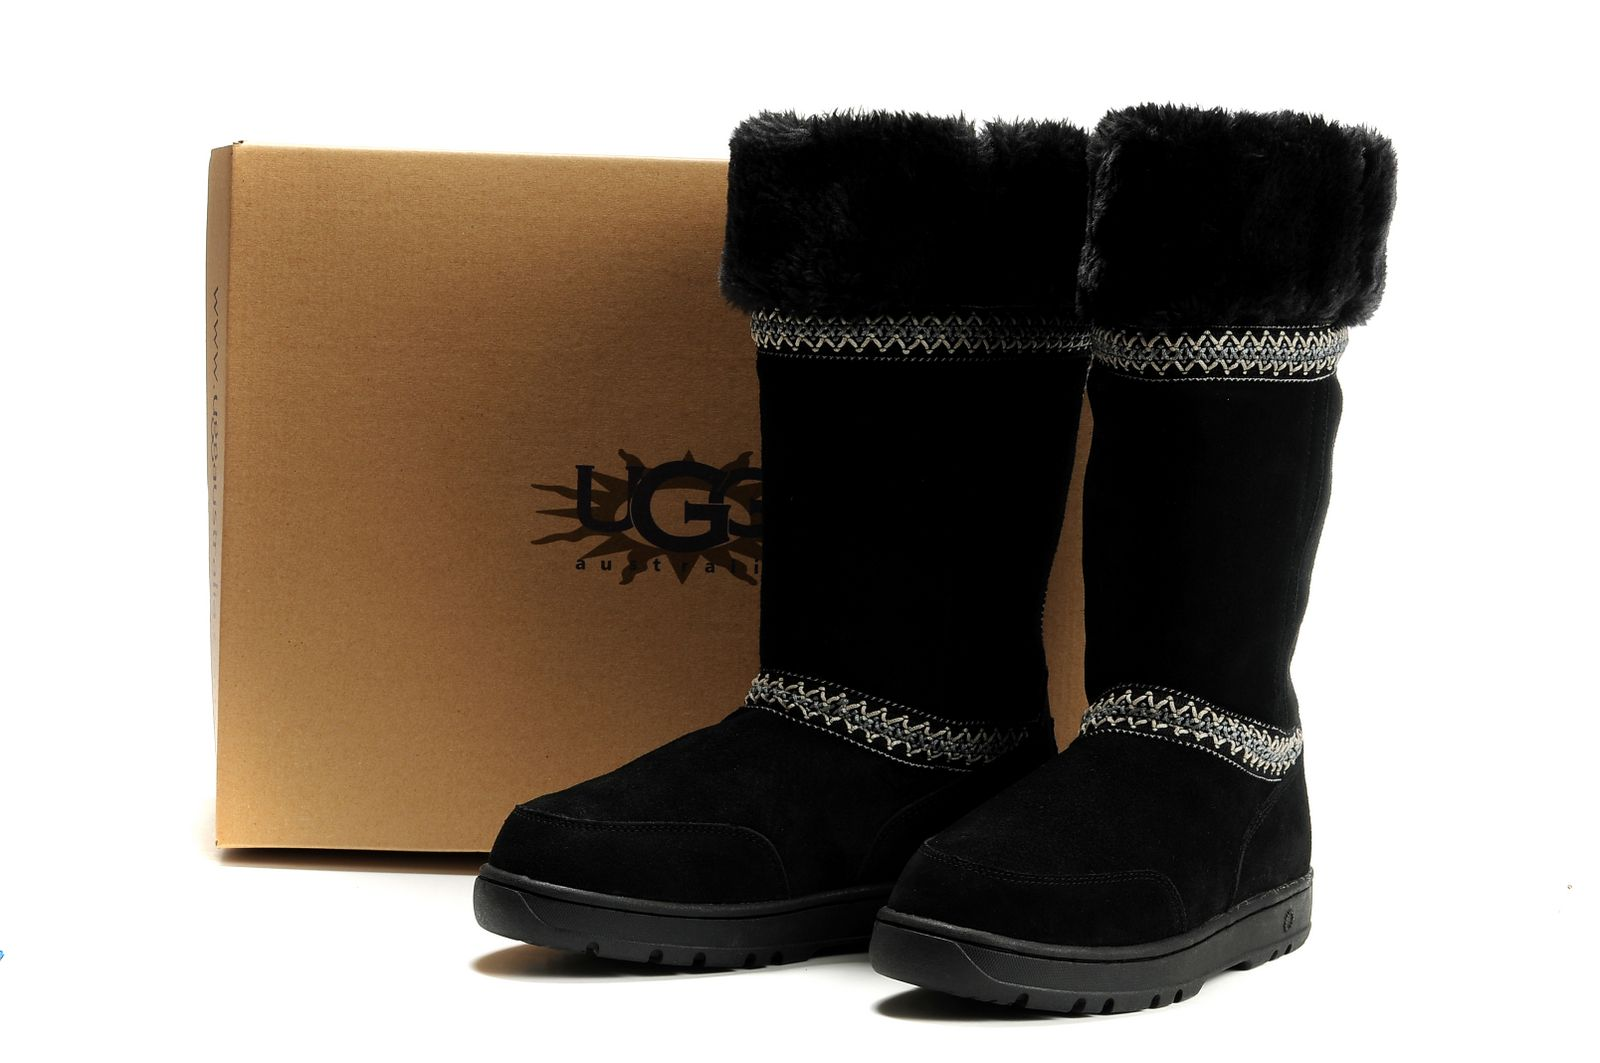 information about ugg boots shoes